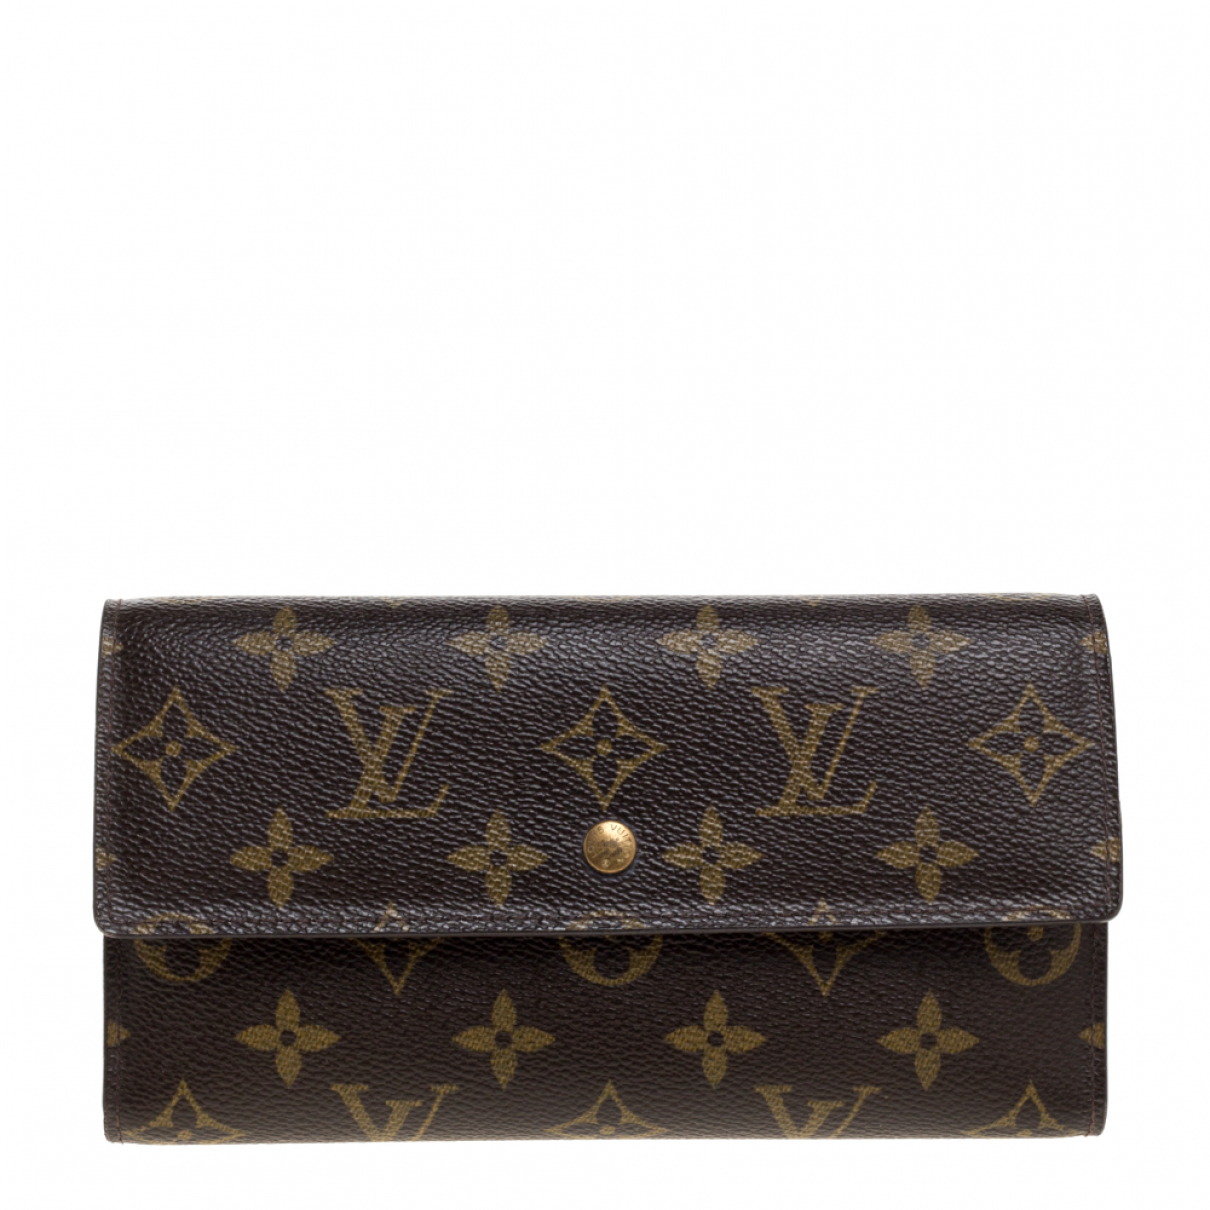 Cartera Sarah de Cuero Louis Vuitton